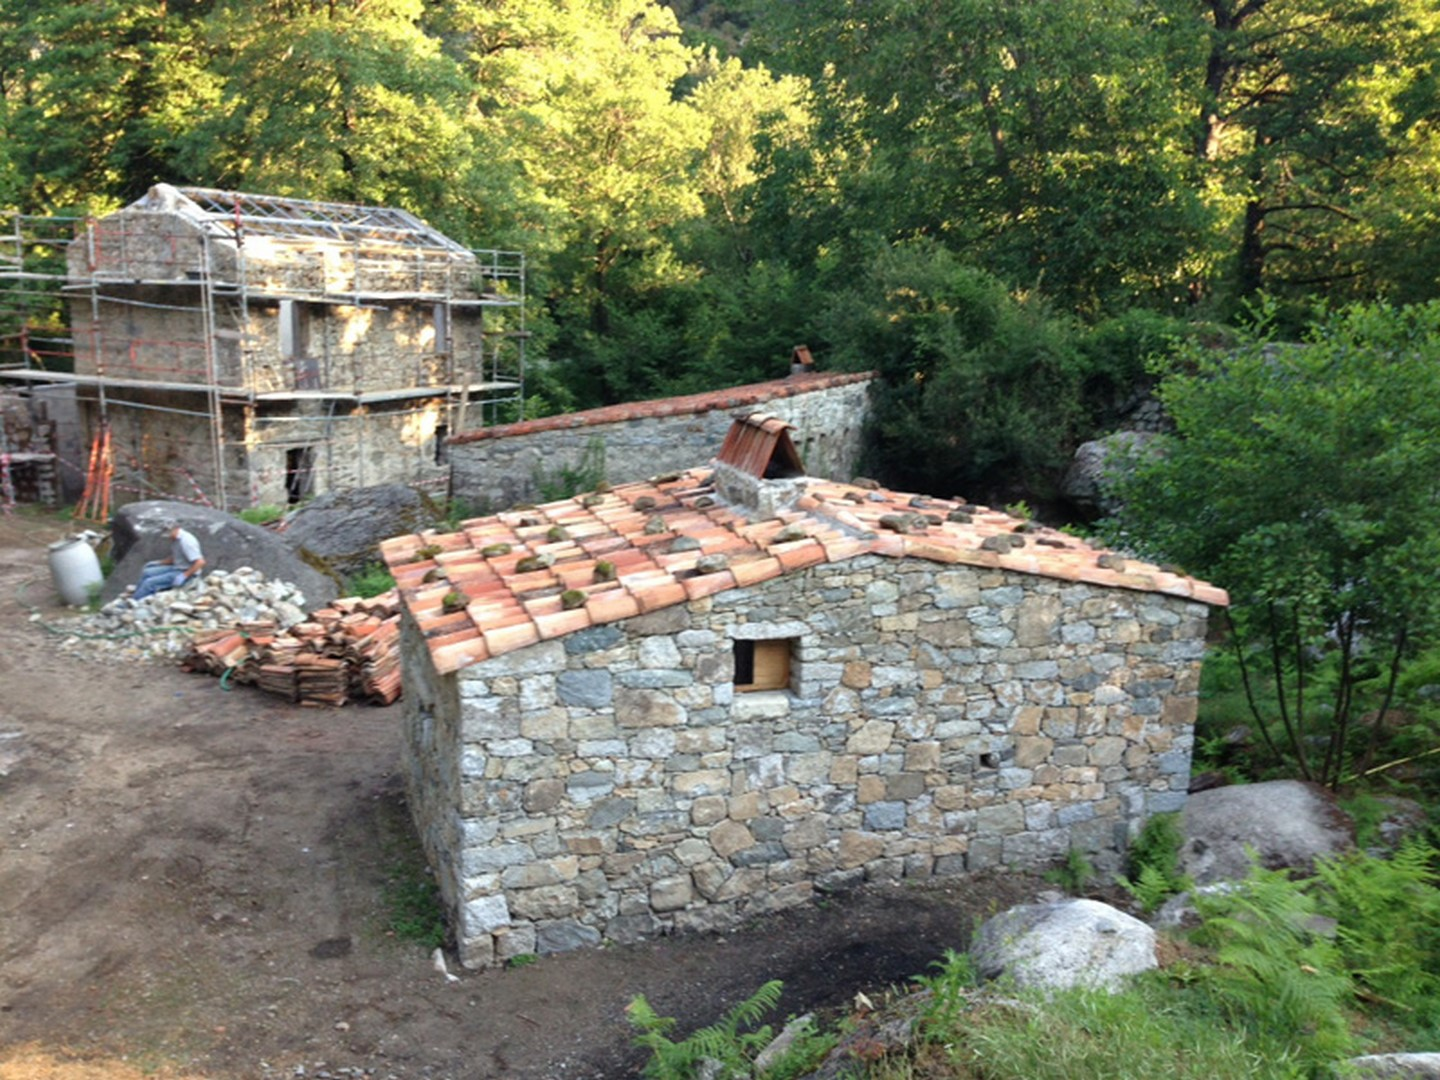 R novation et restauration du patrimoine bati pierres corse for Renovation maison pierre